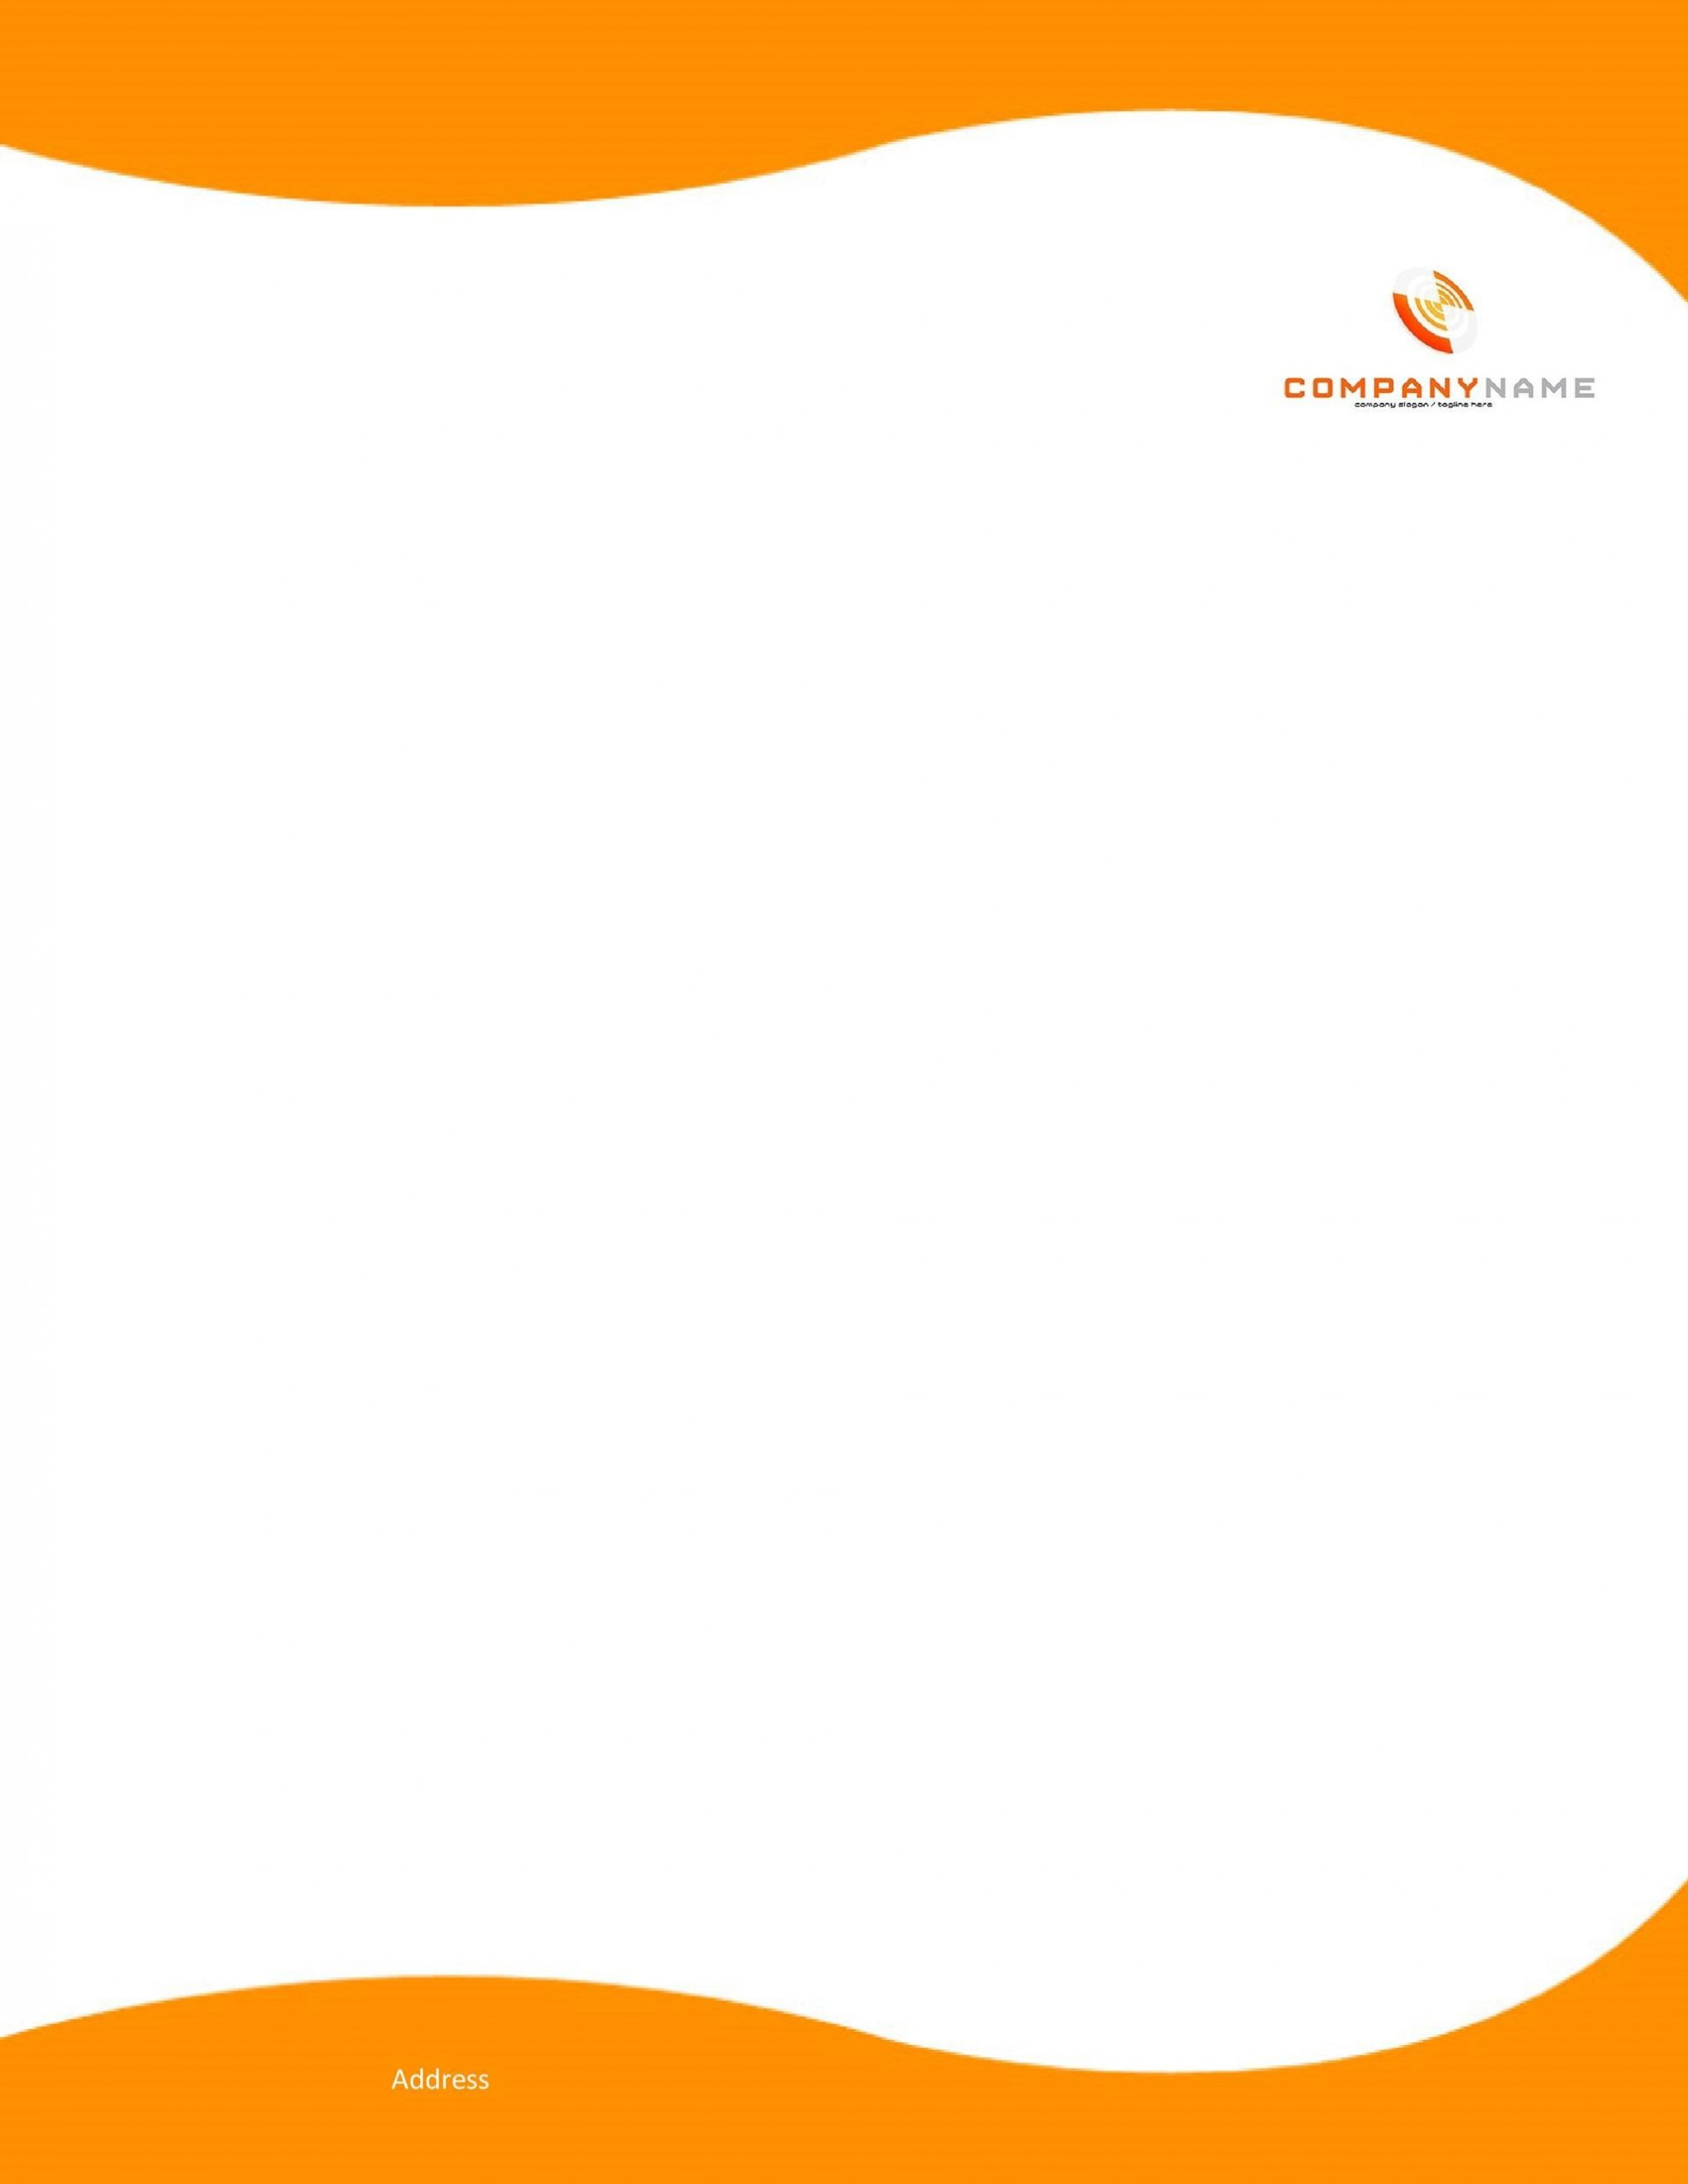 006 Unusual Letterhead Format Excel Free Download Picture 1920